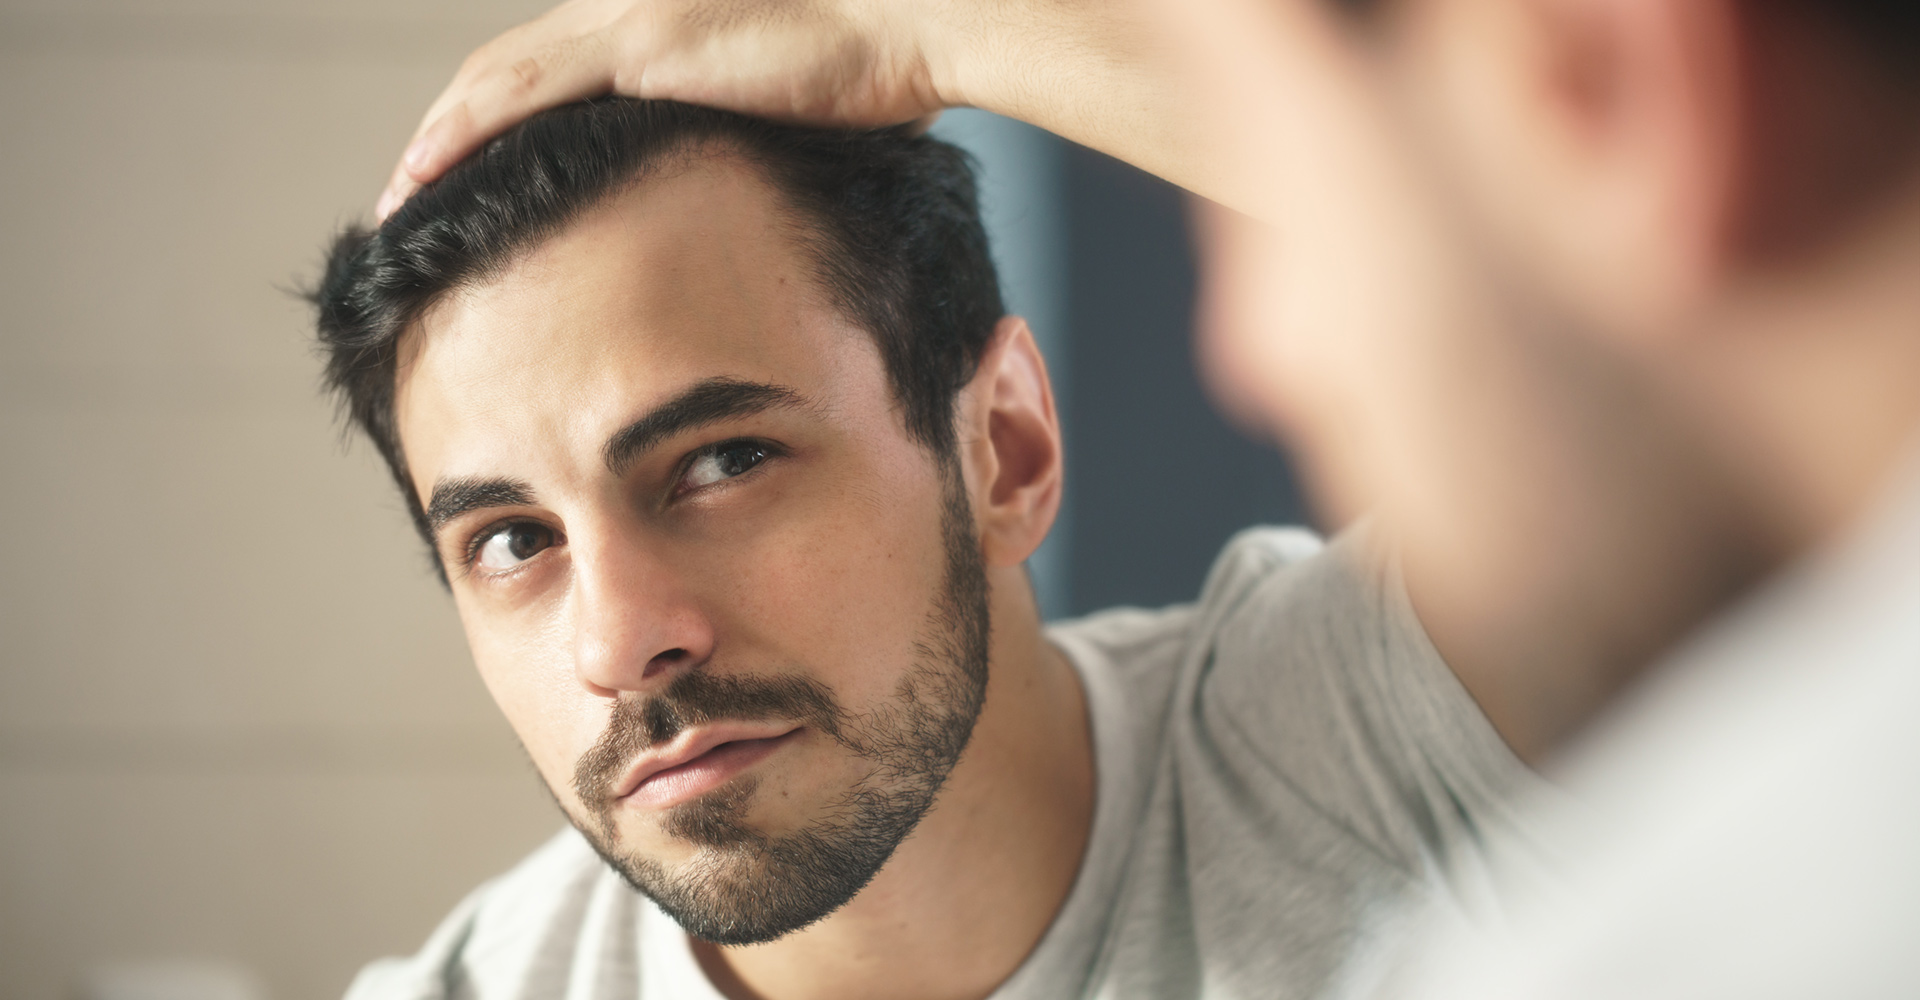 Hair Transplant NJ: What You Need To Know About Hair Loss & Dandruff